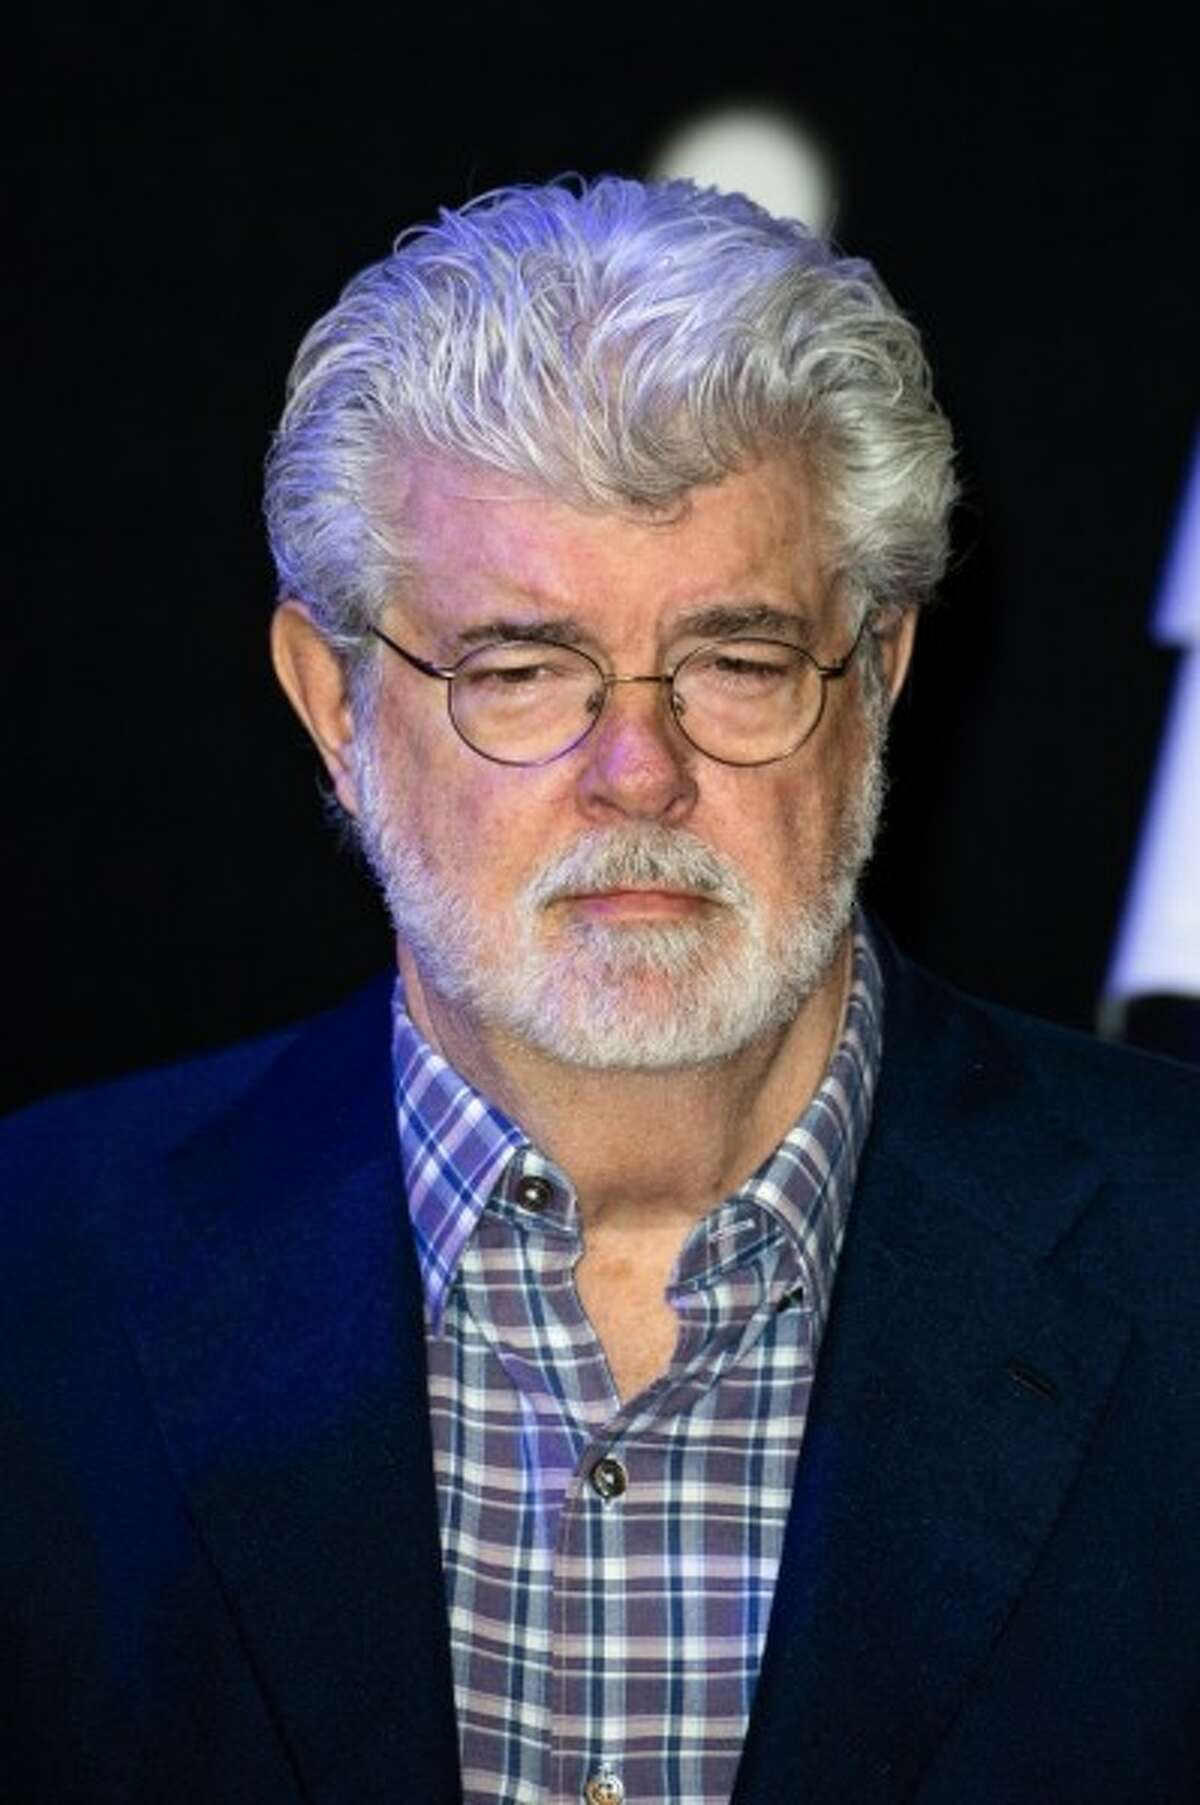 Early life George Walton Lucas Jr. was born in Modesto, Calif. His father was a stationer. He graduated from the University of Southern California film school, where he met Steven Spielberg, who would later direct the